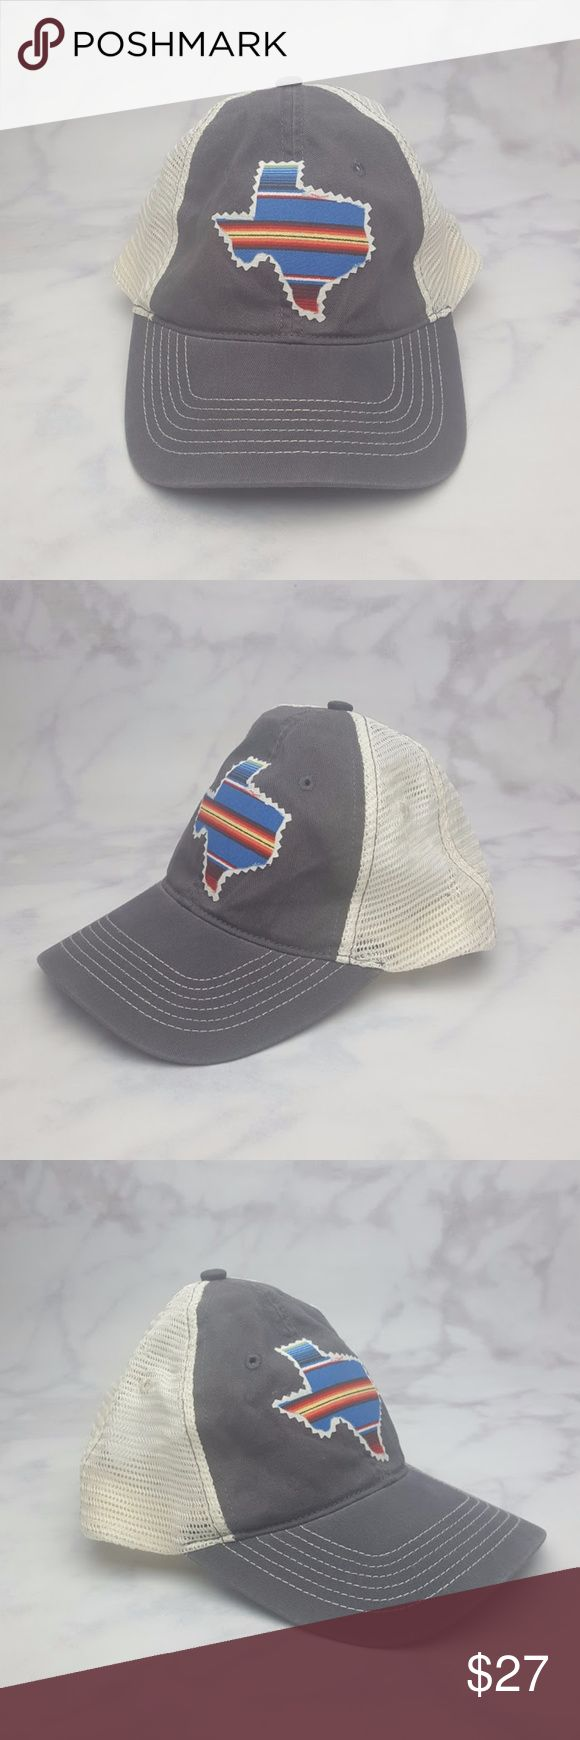 Texas Boho Snap-Back Trucker Hat Navy Blue & White Boho Style Texas Trucker Hat Cap Snap-Back Navy Blue & Off-White. Features a stylish Boho look as the outline of the state of Texas is colored in with multiple colors of Blue/black/red/yellow/orange/white/green. A loose thread on the Texas patch (pictured). One Size Fits All with the adjustable snap-back snaps. New Without Tags. 60% Cotton 40% Polyester. No Trades! Accessories Hats